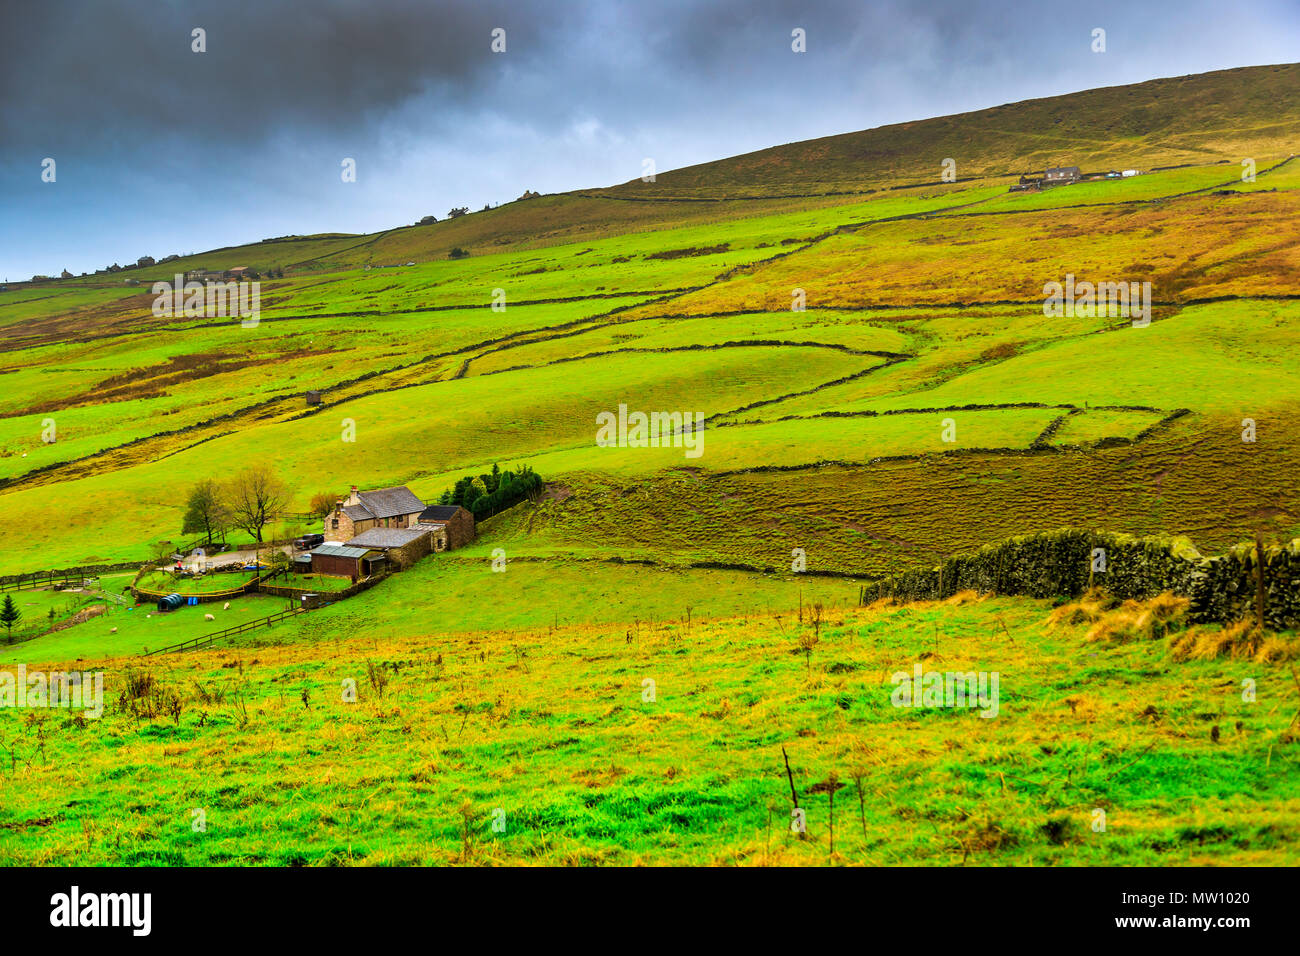 The rolling hills of Derbyshire - Stock Image